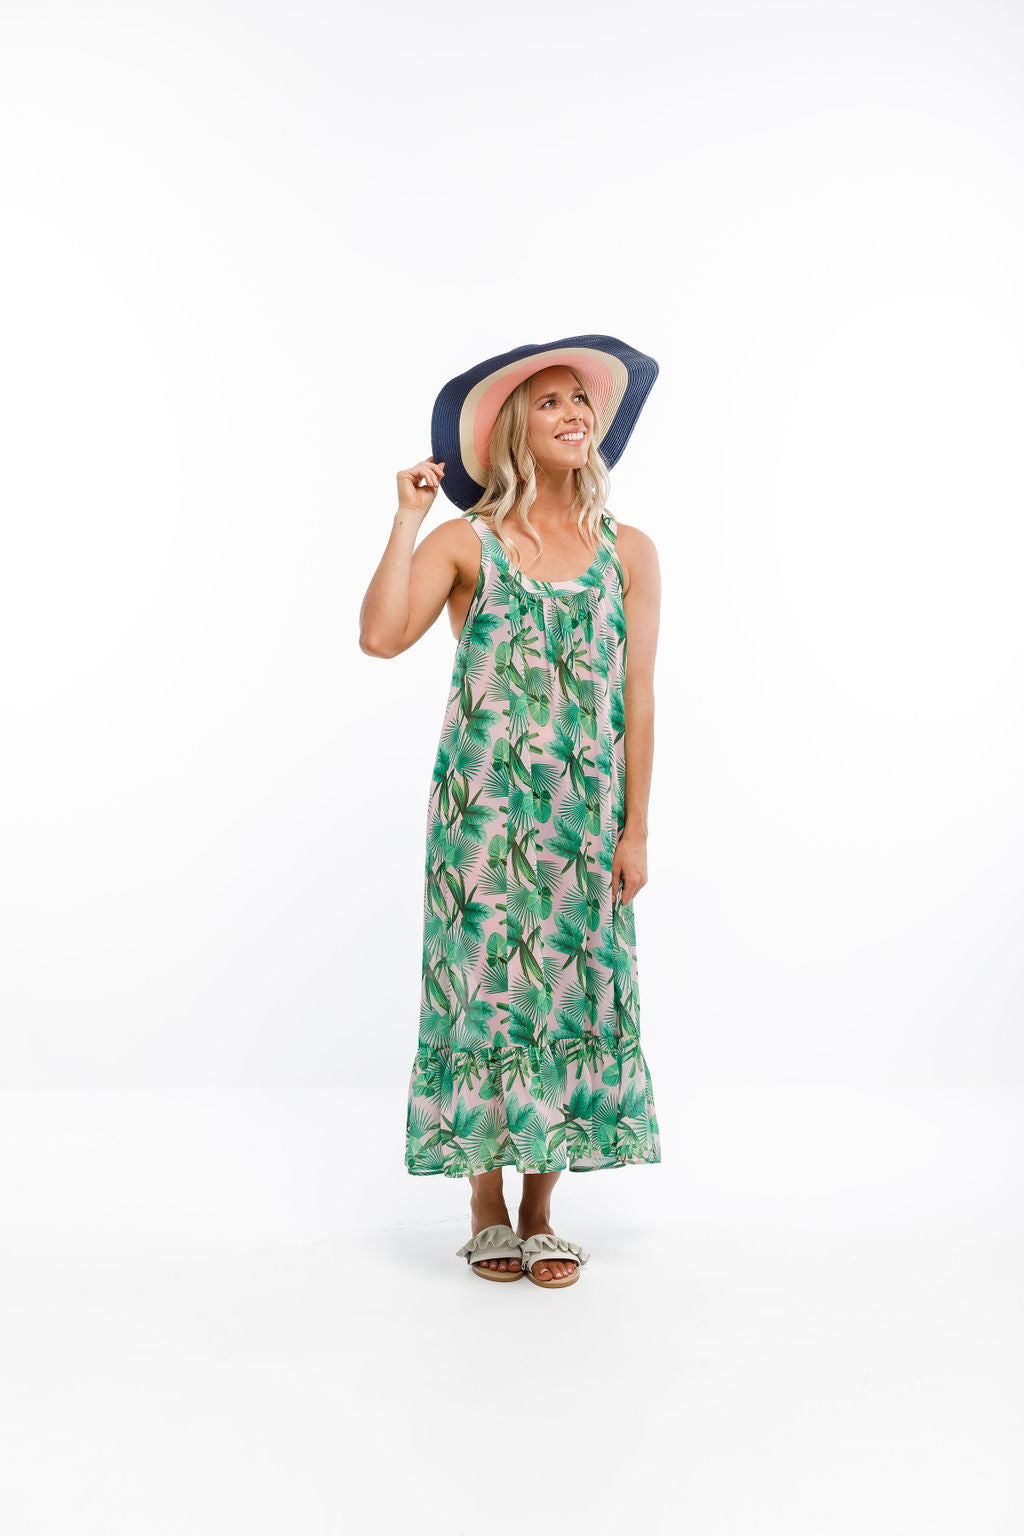 PIHA DRESS - Tropical Palm print (incl. slip)